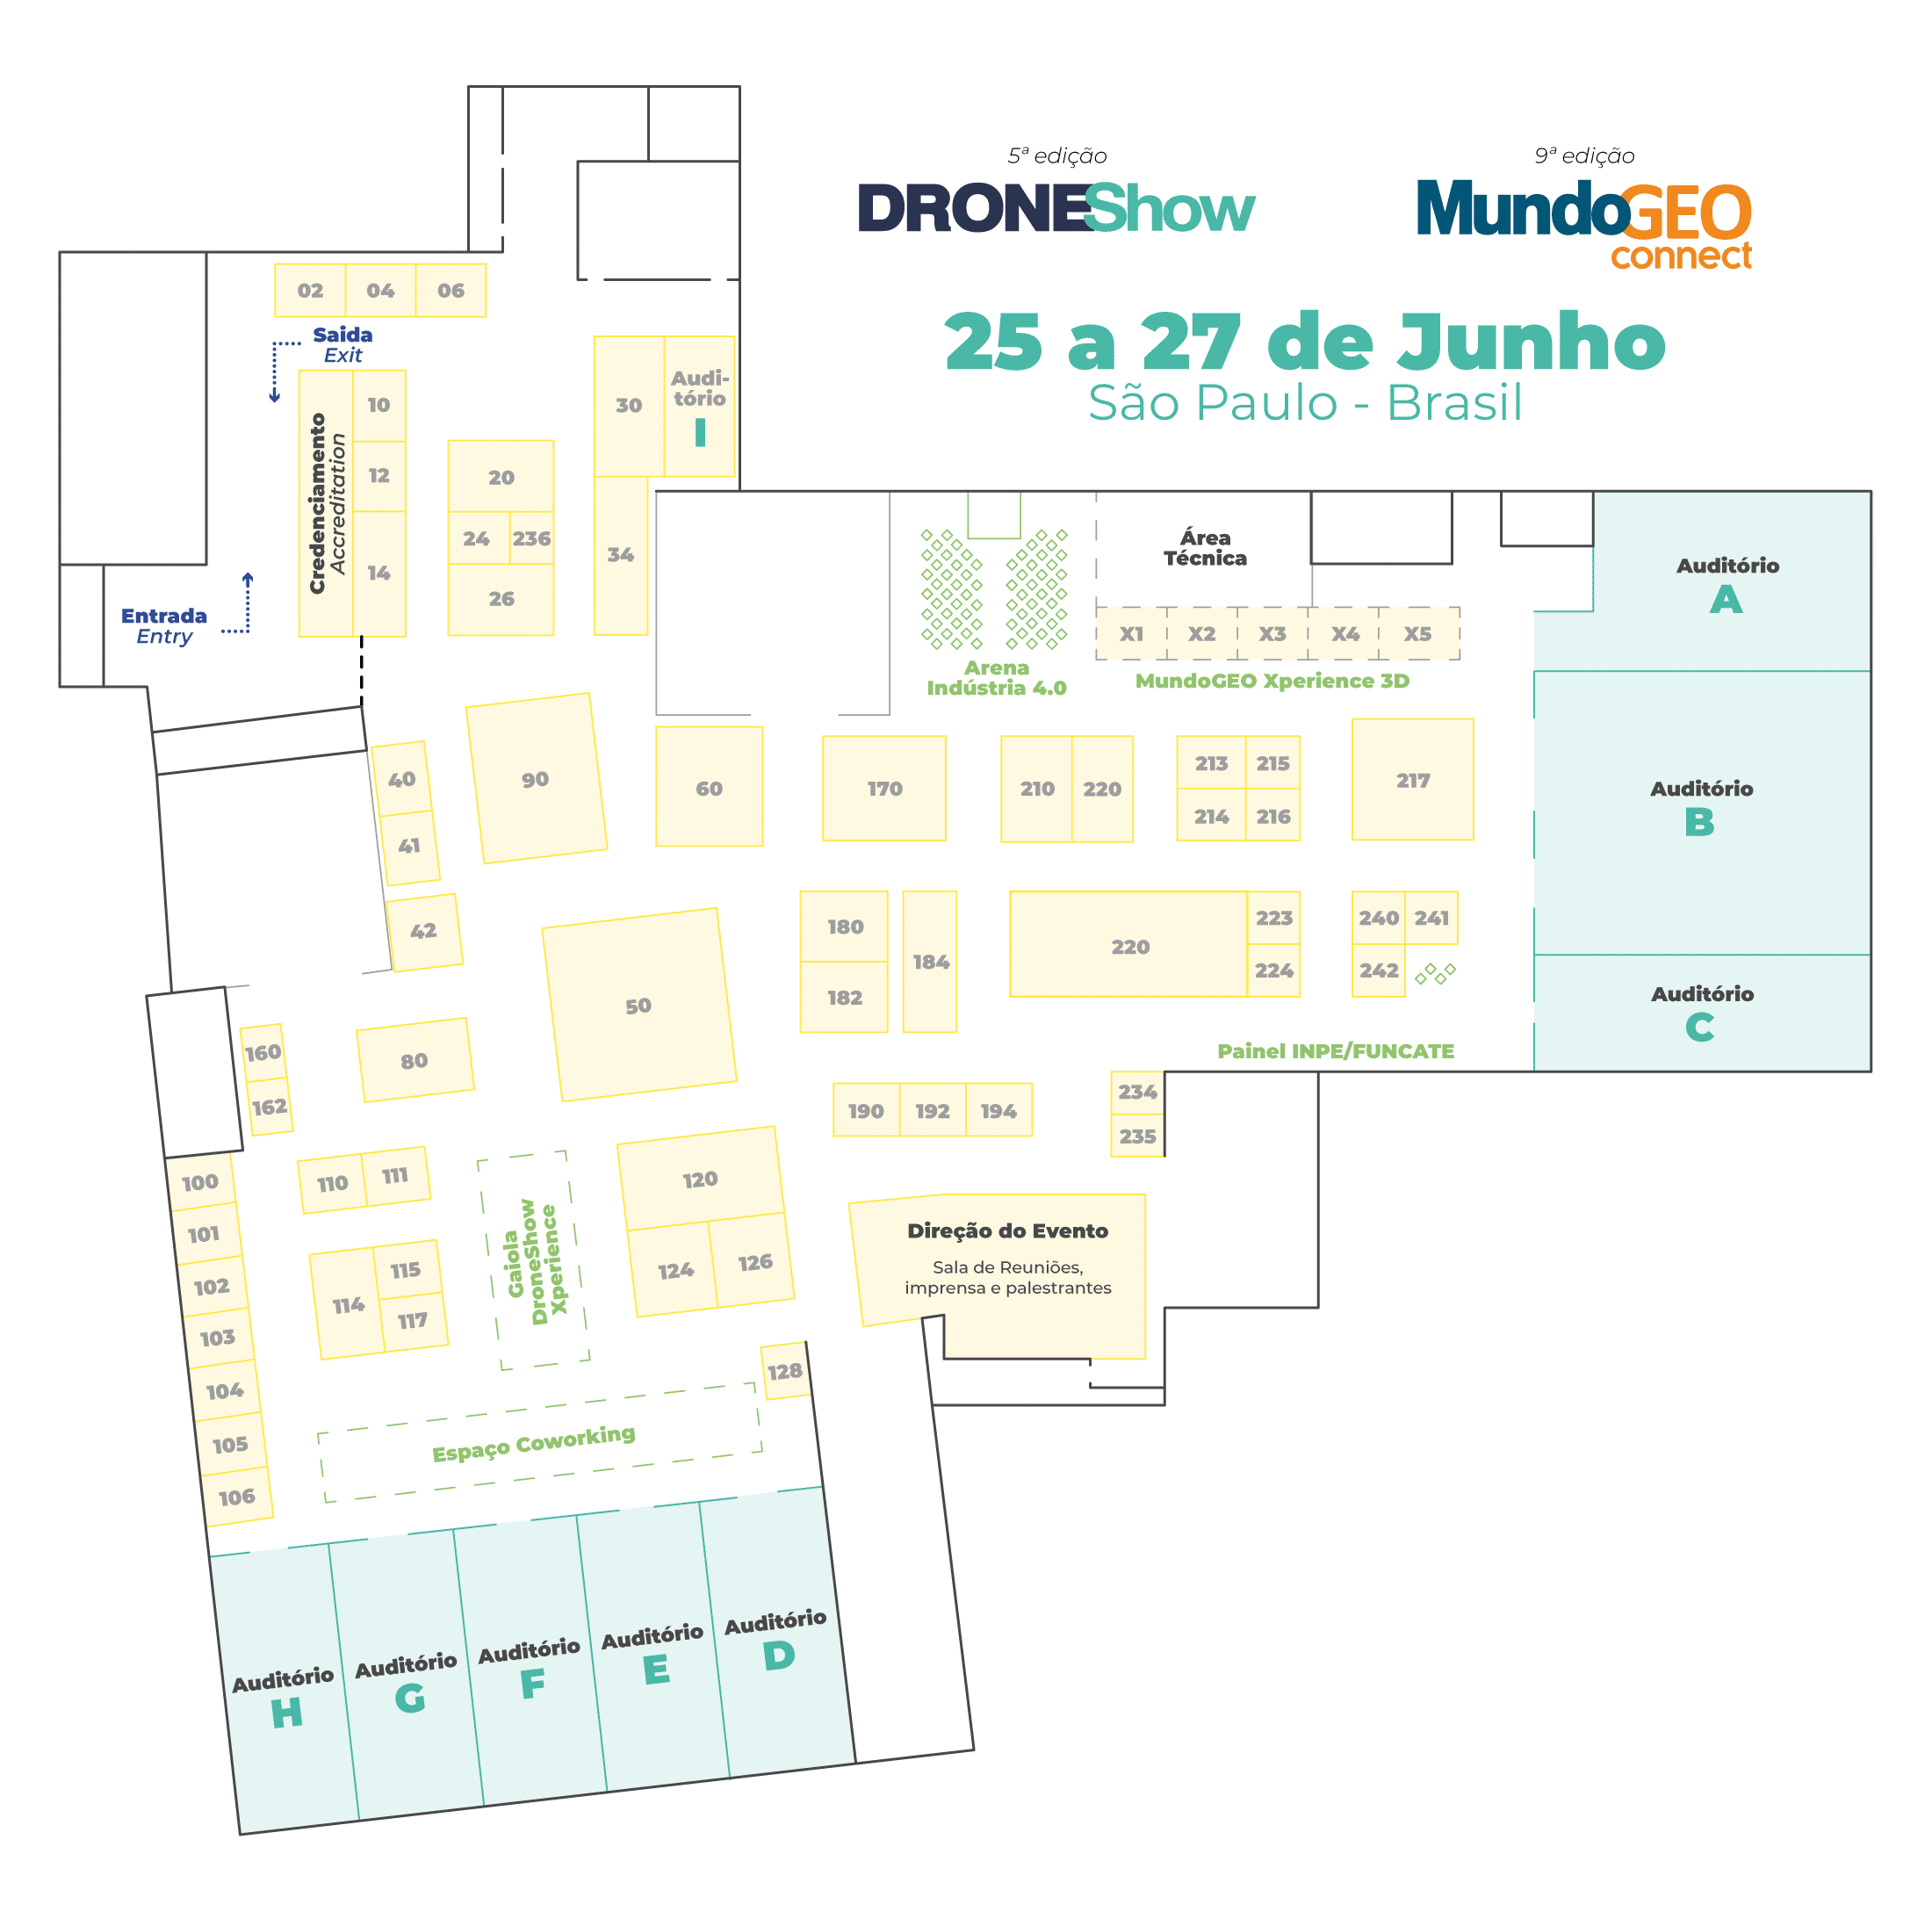 2019 Allcomp confirmada na feira MundoGEO Connect e DroneShow 2019